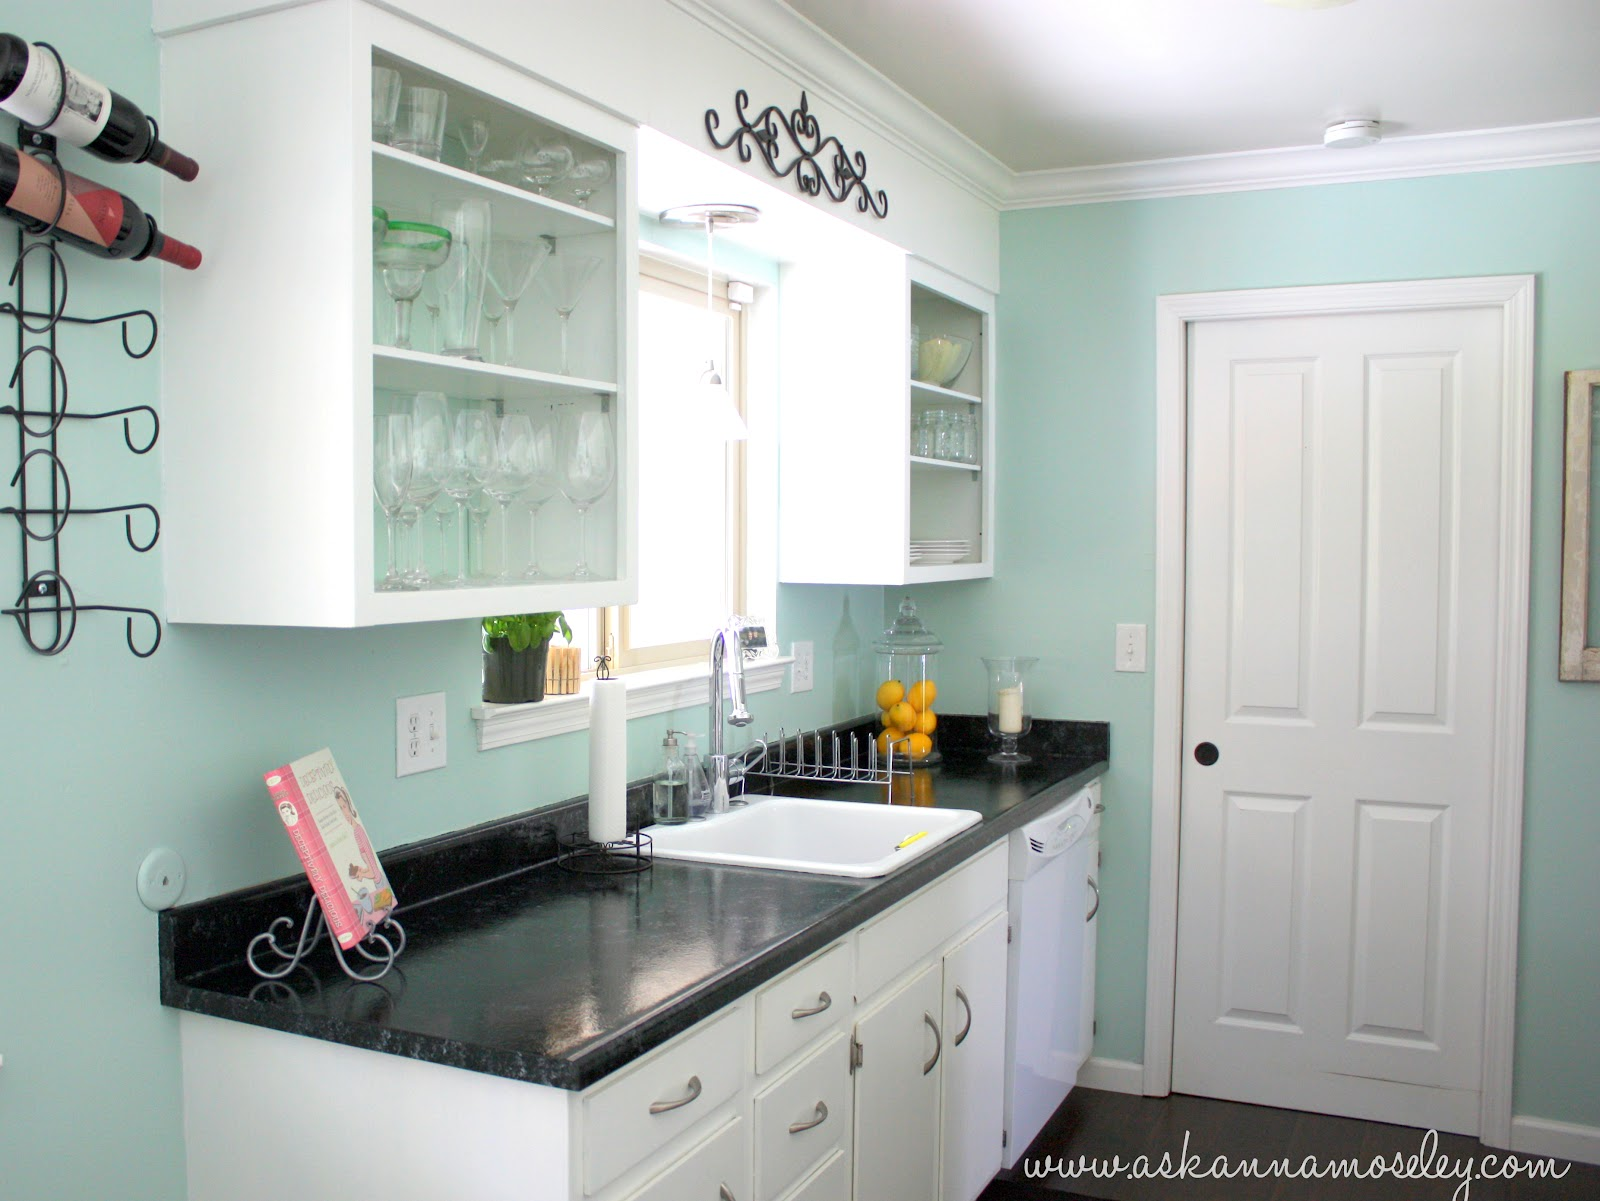 Giani Granite Countertop Paint Review - Ask Anna